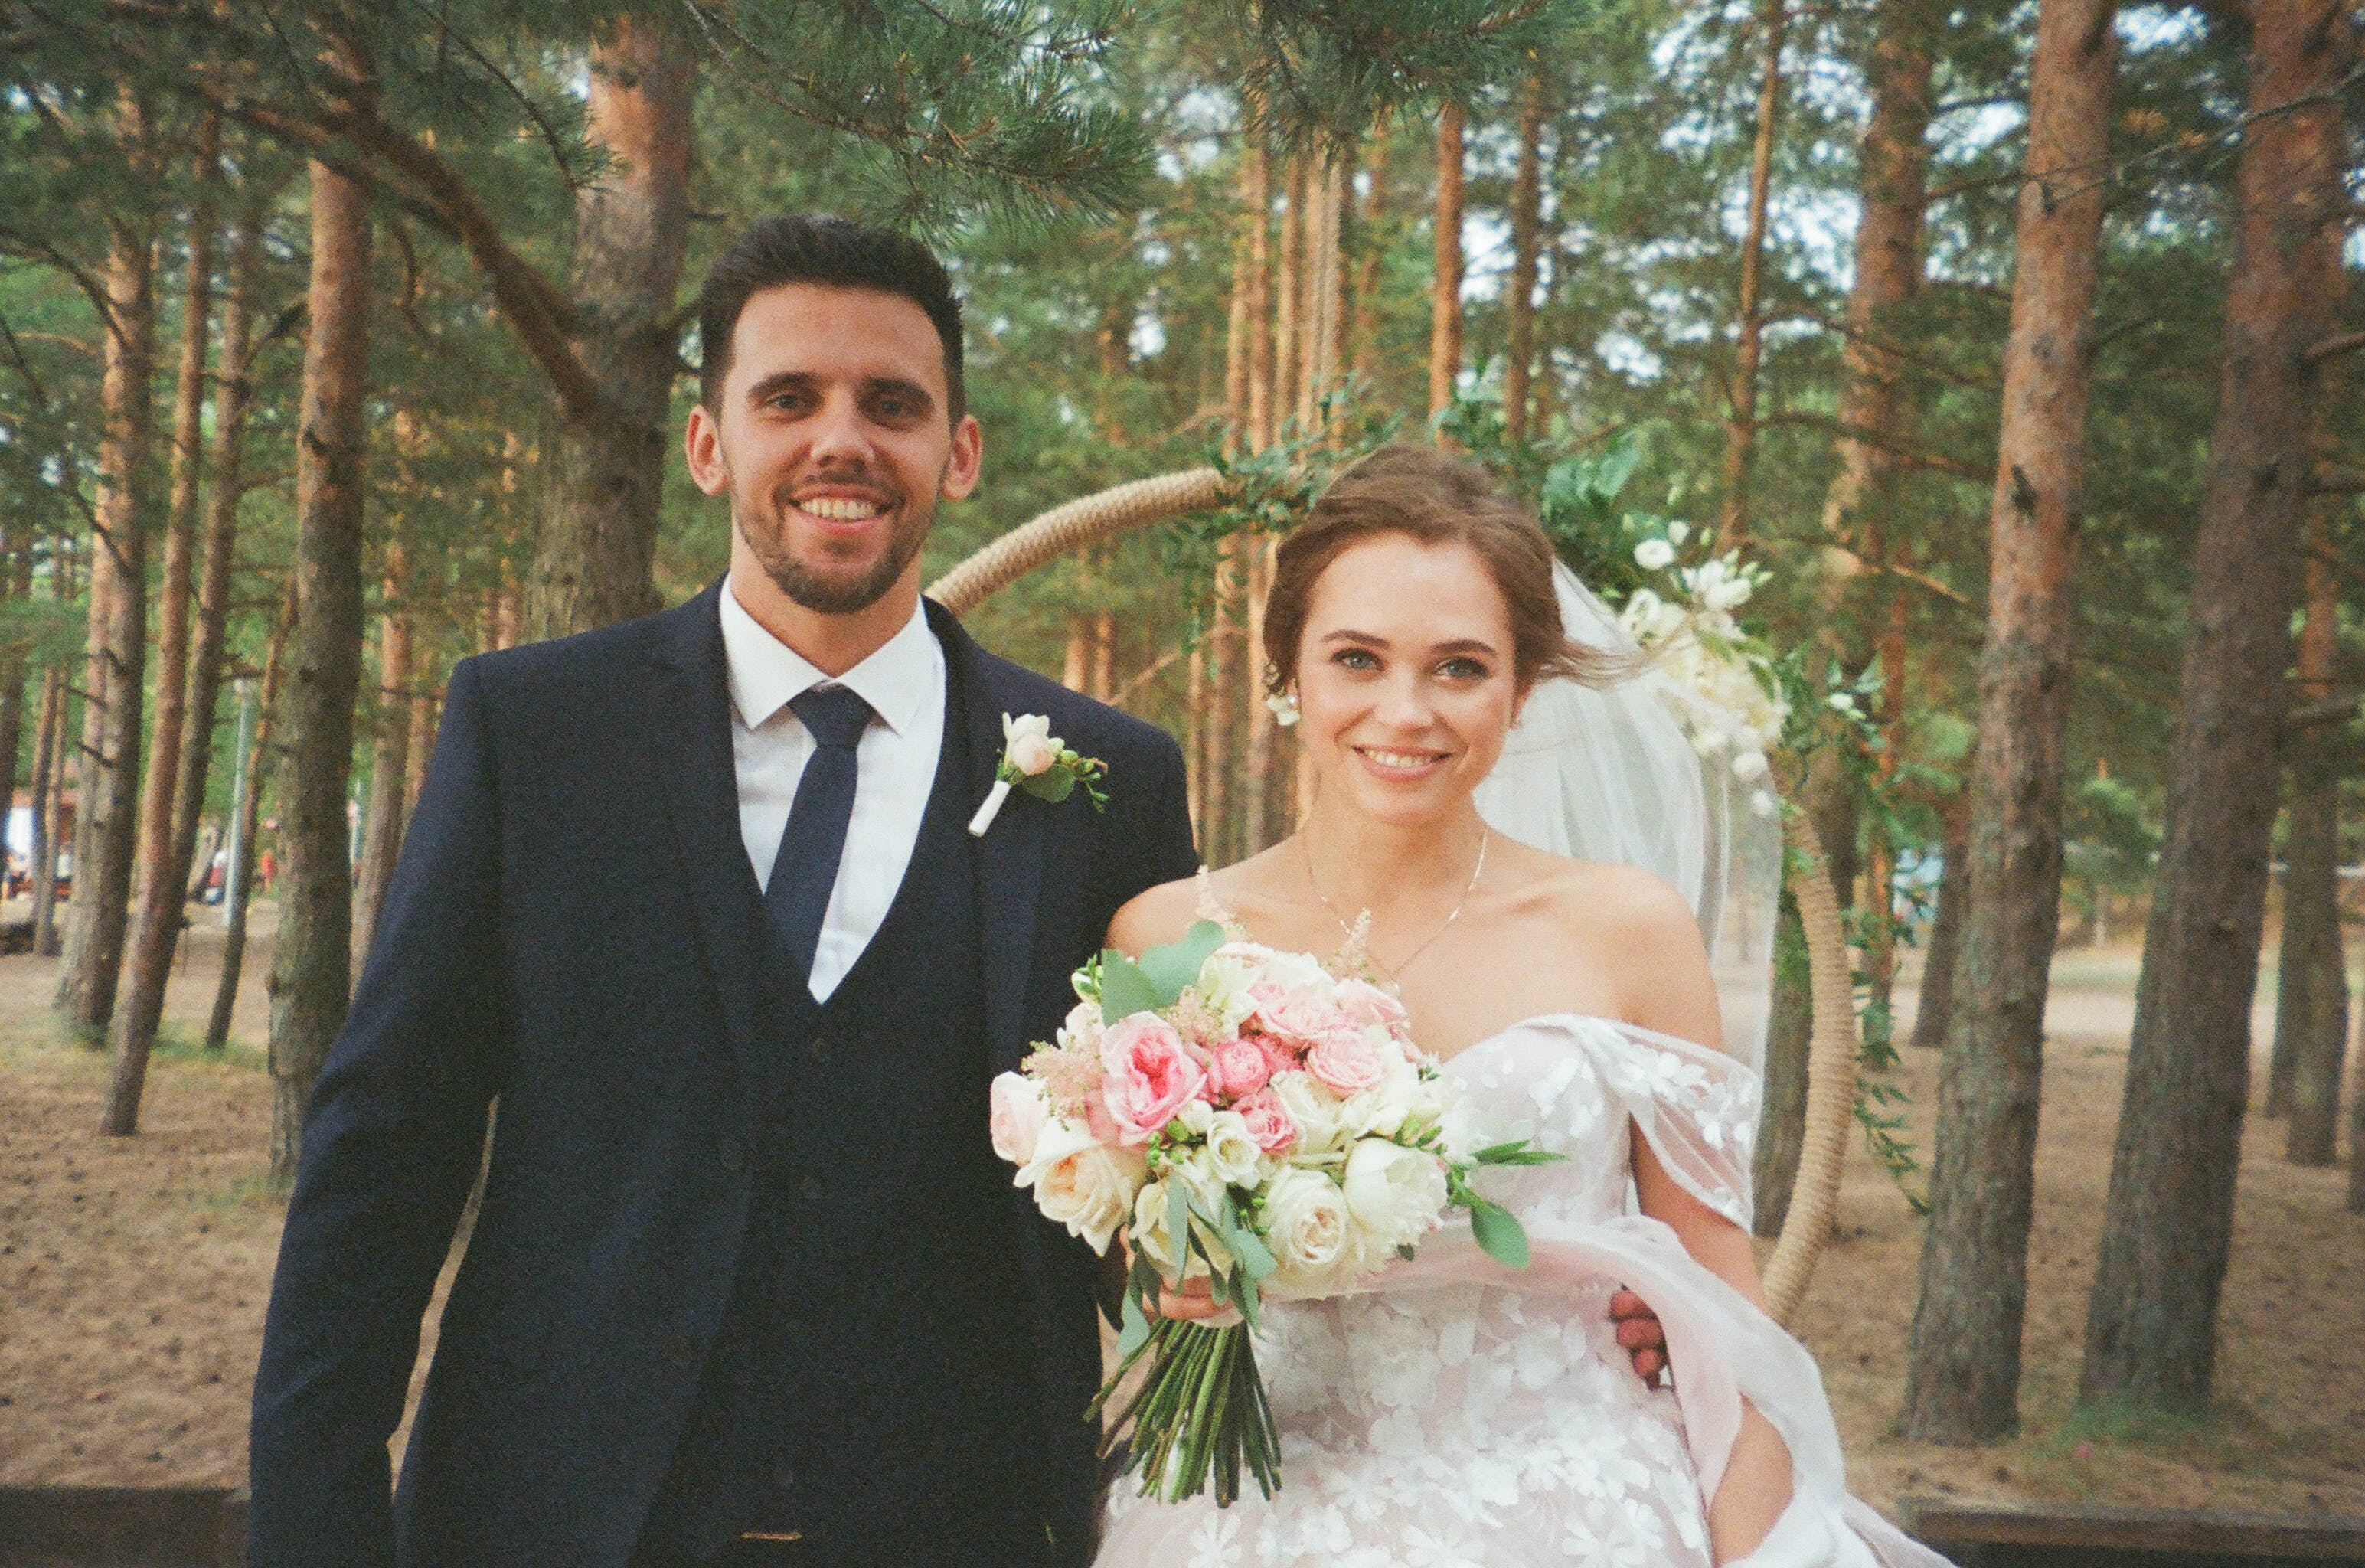 Bride and Groom Taking Photo